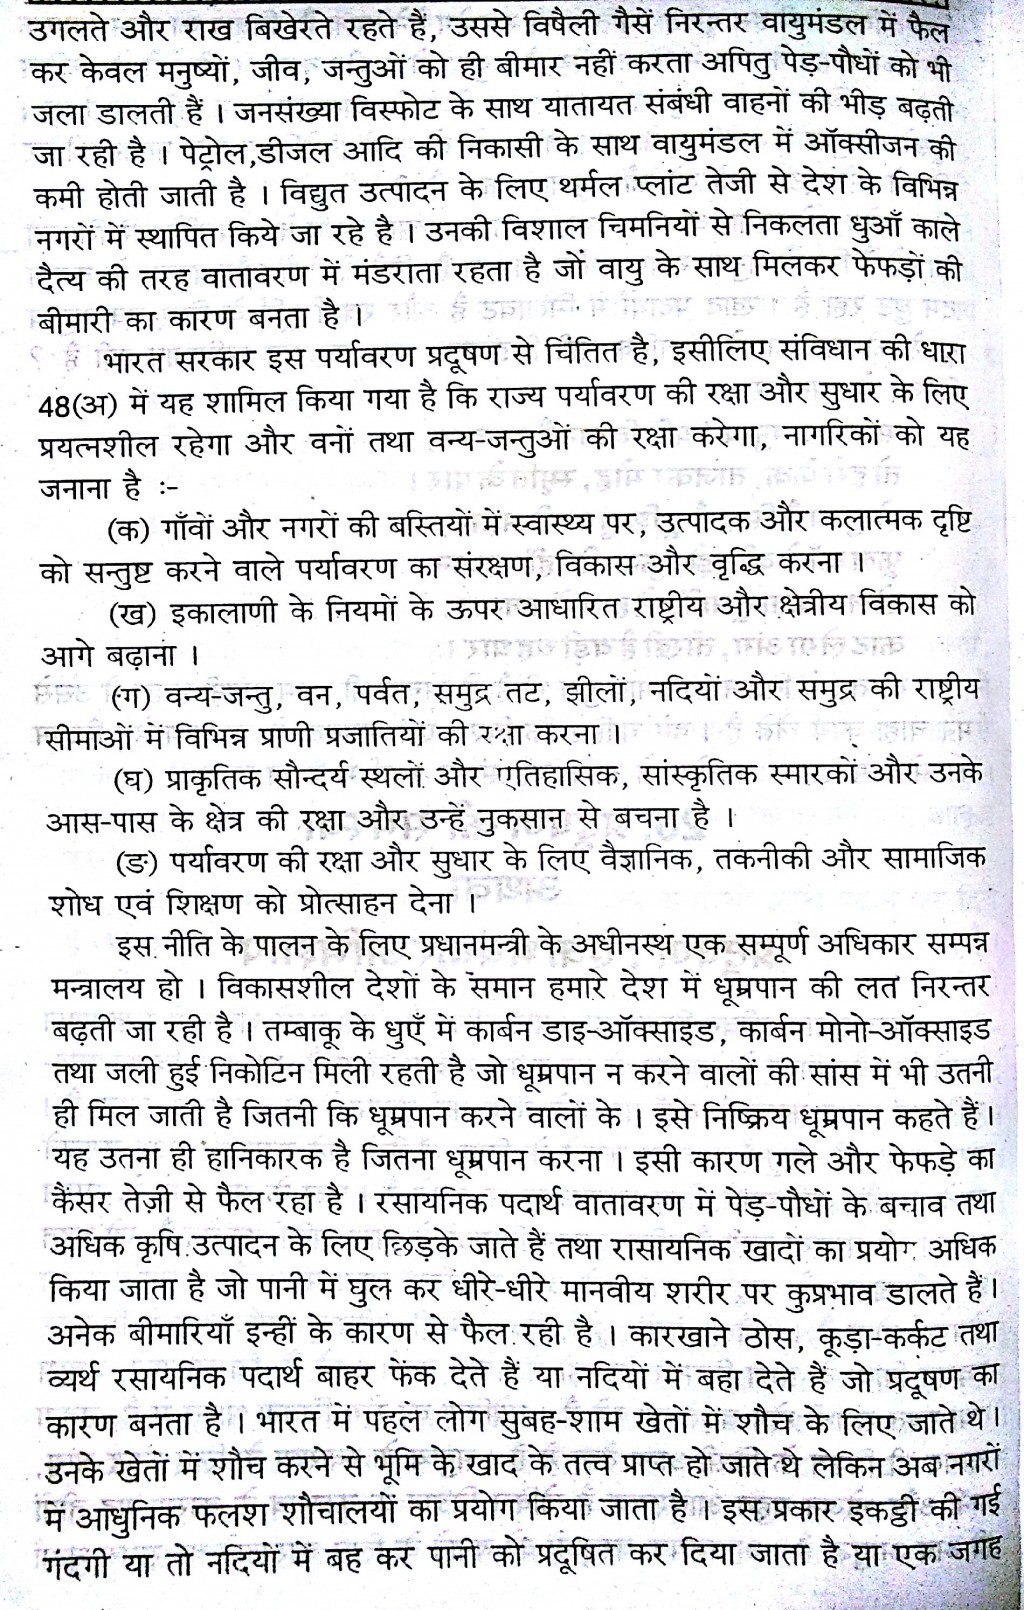 004 Essay Example Kqxjwi3 Global Terrorism In Outstanding Hindi Large